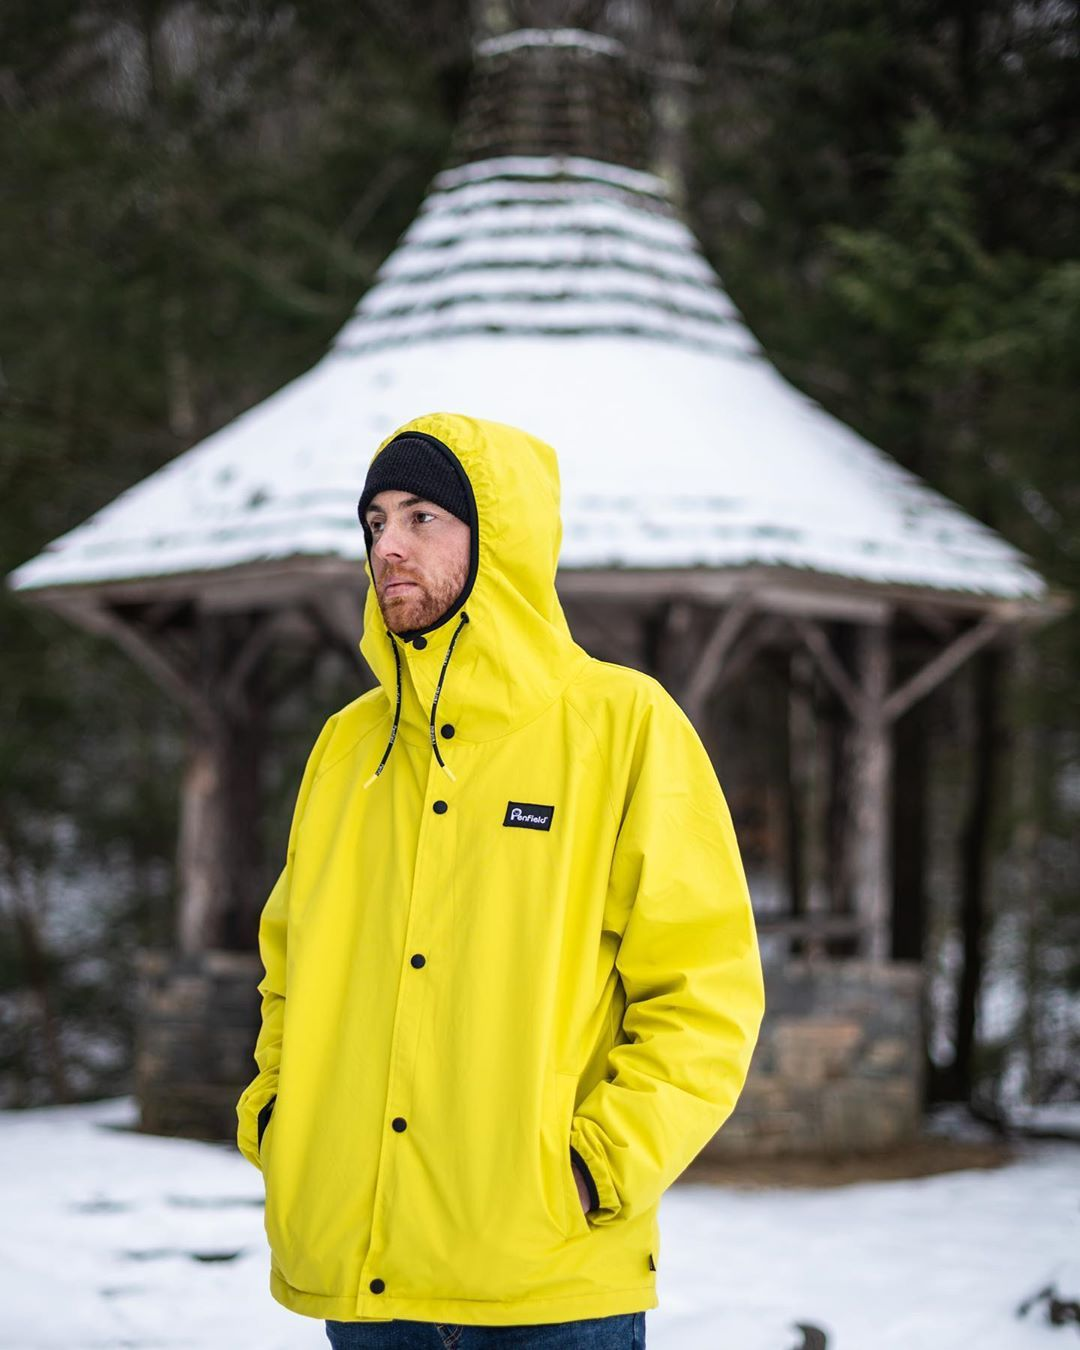 Stay Cool But Protected In Our Verbank Jacket Complete With Adjustable Hood And Hand Warmer Pockets Nathanaelasaro Penfield Verbankjacket Explore [ 1350 x 1080 Pixel ]